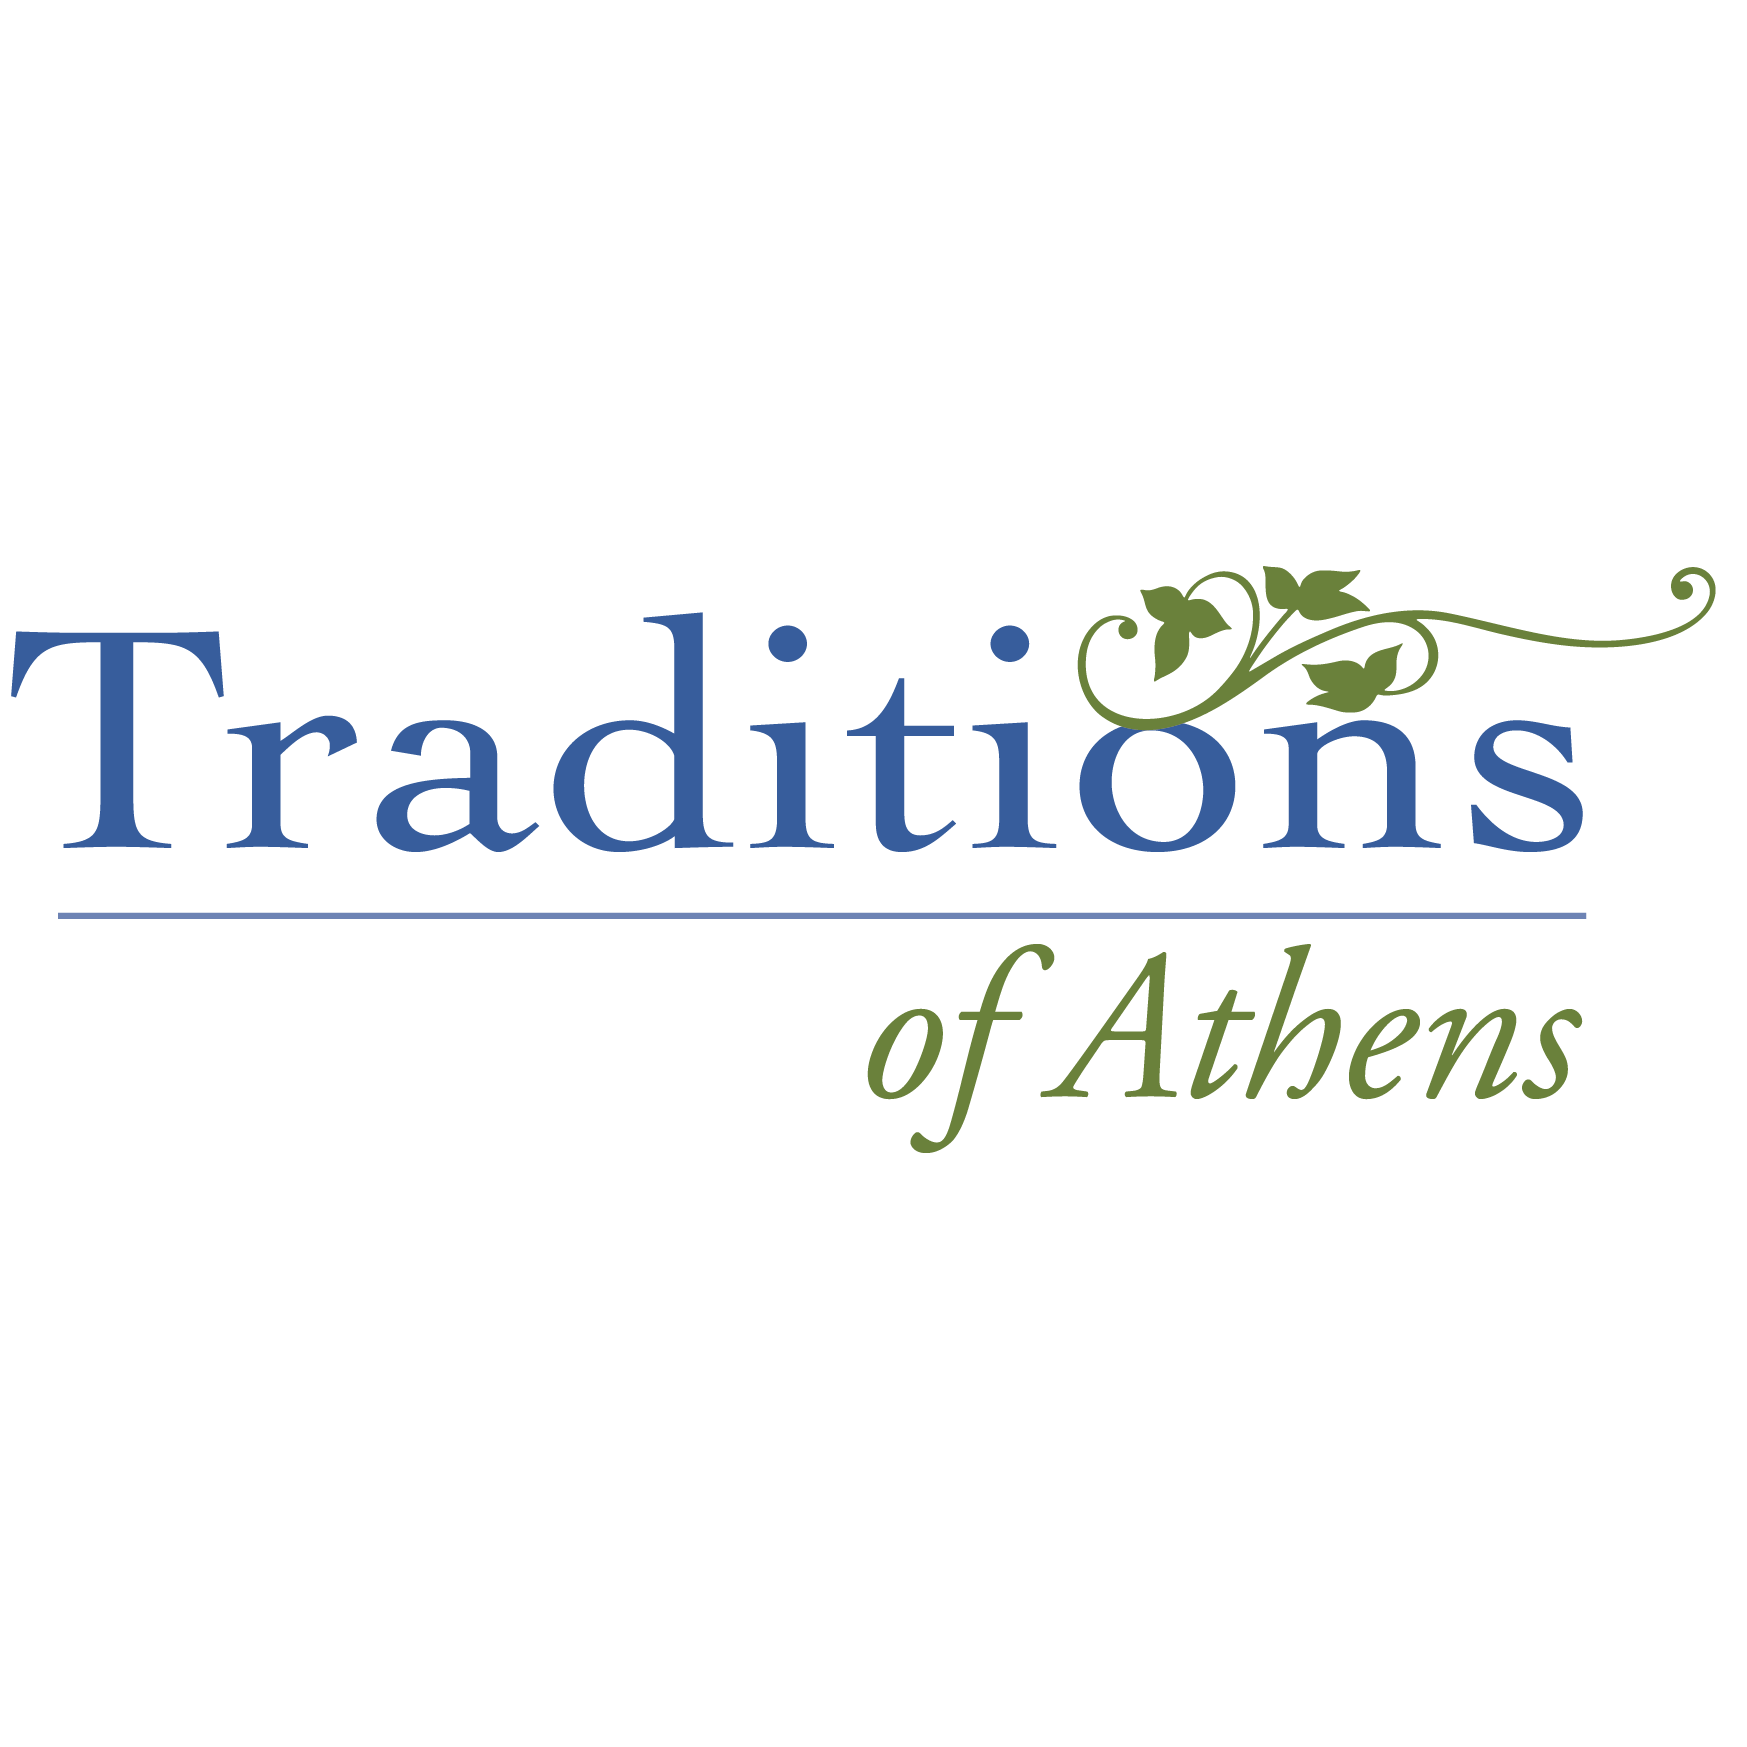 Traditions of Athens